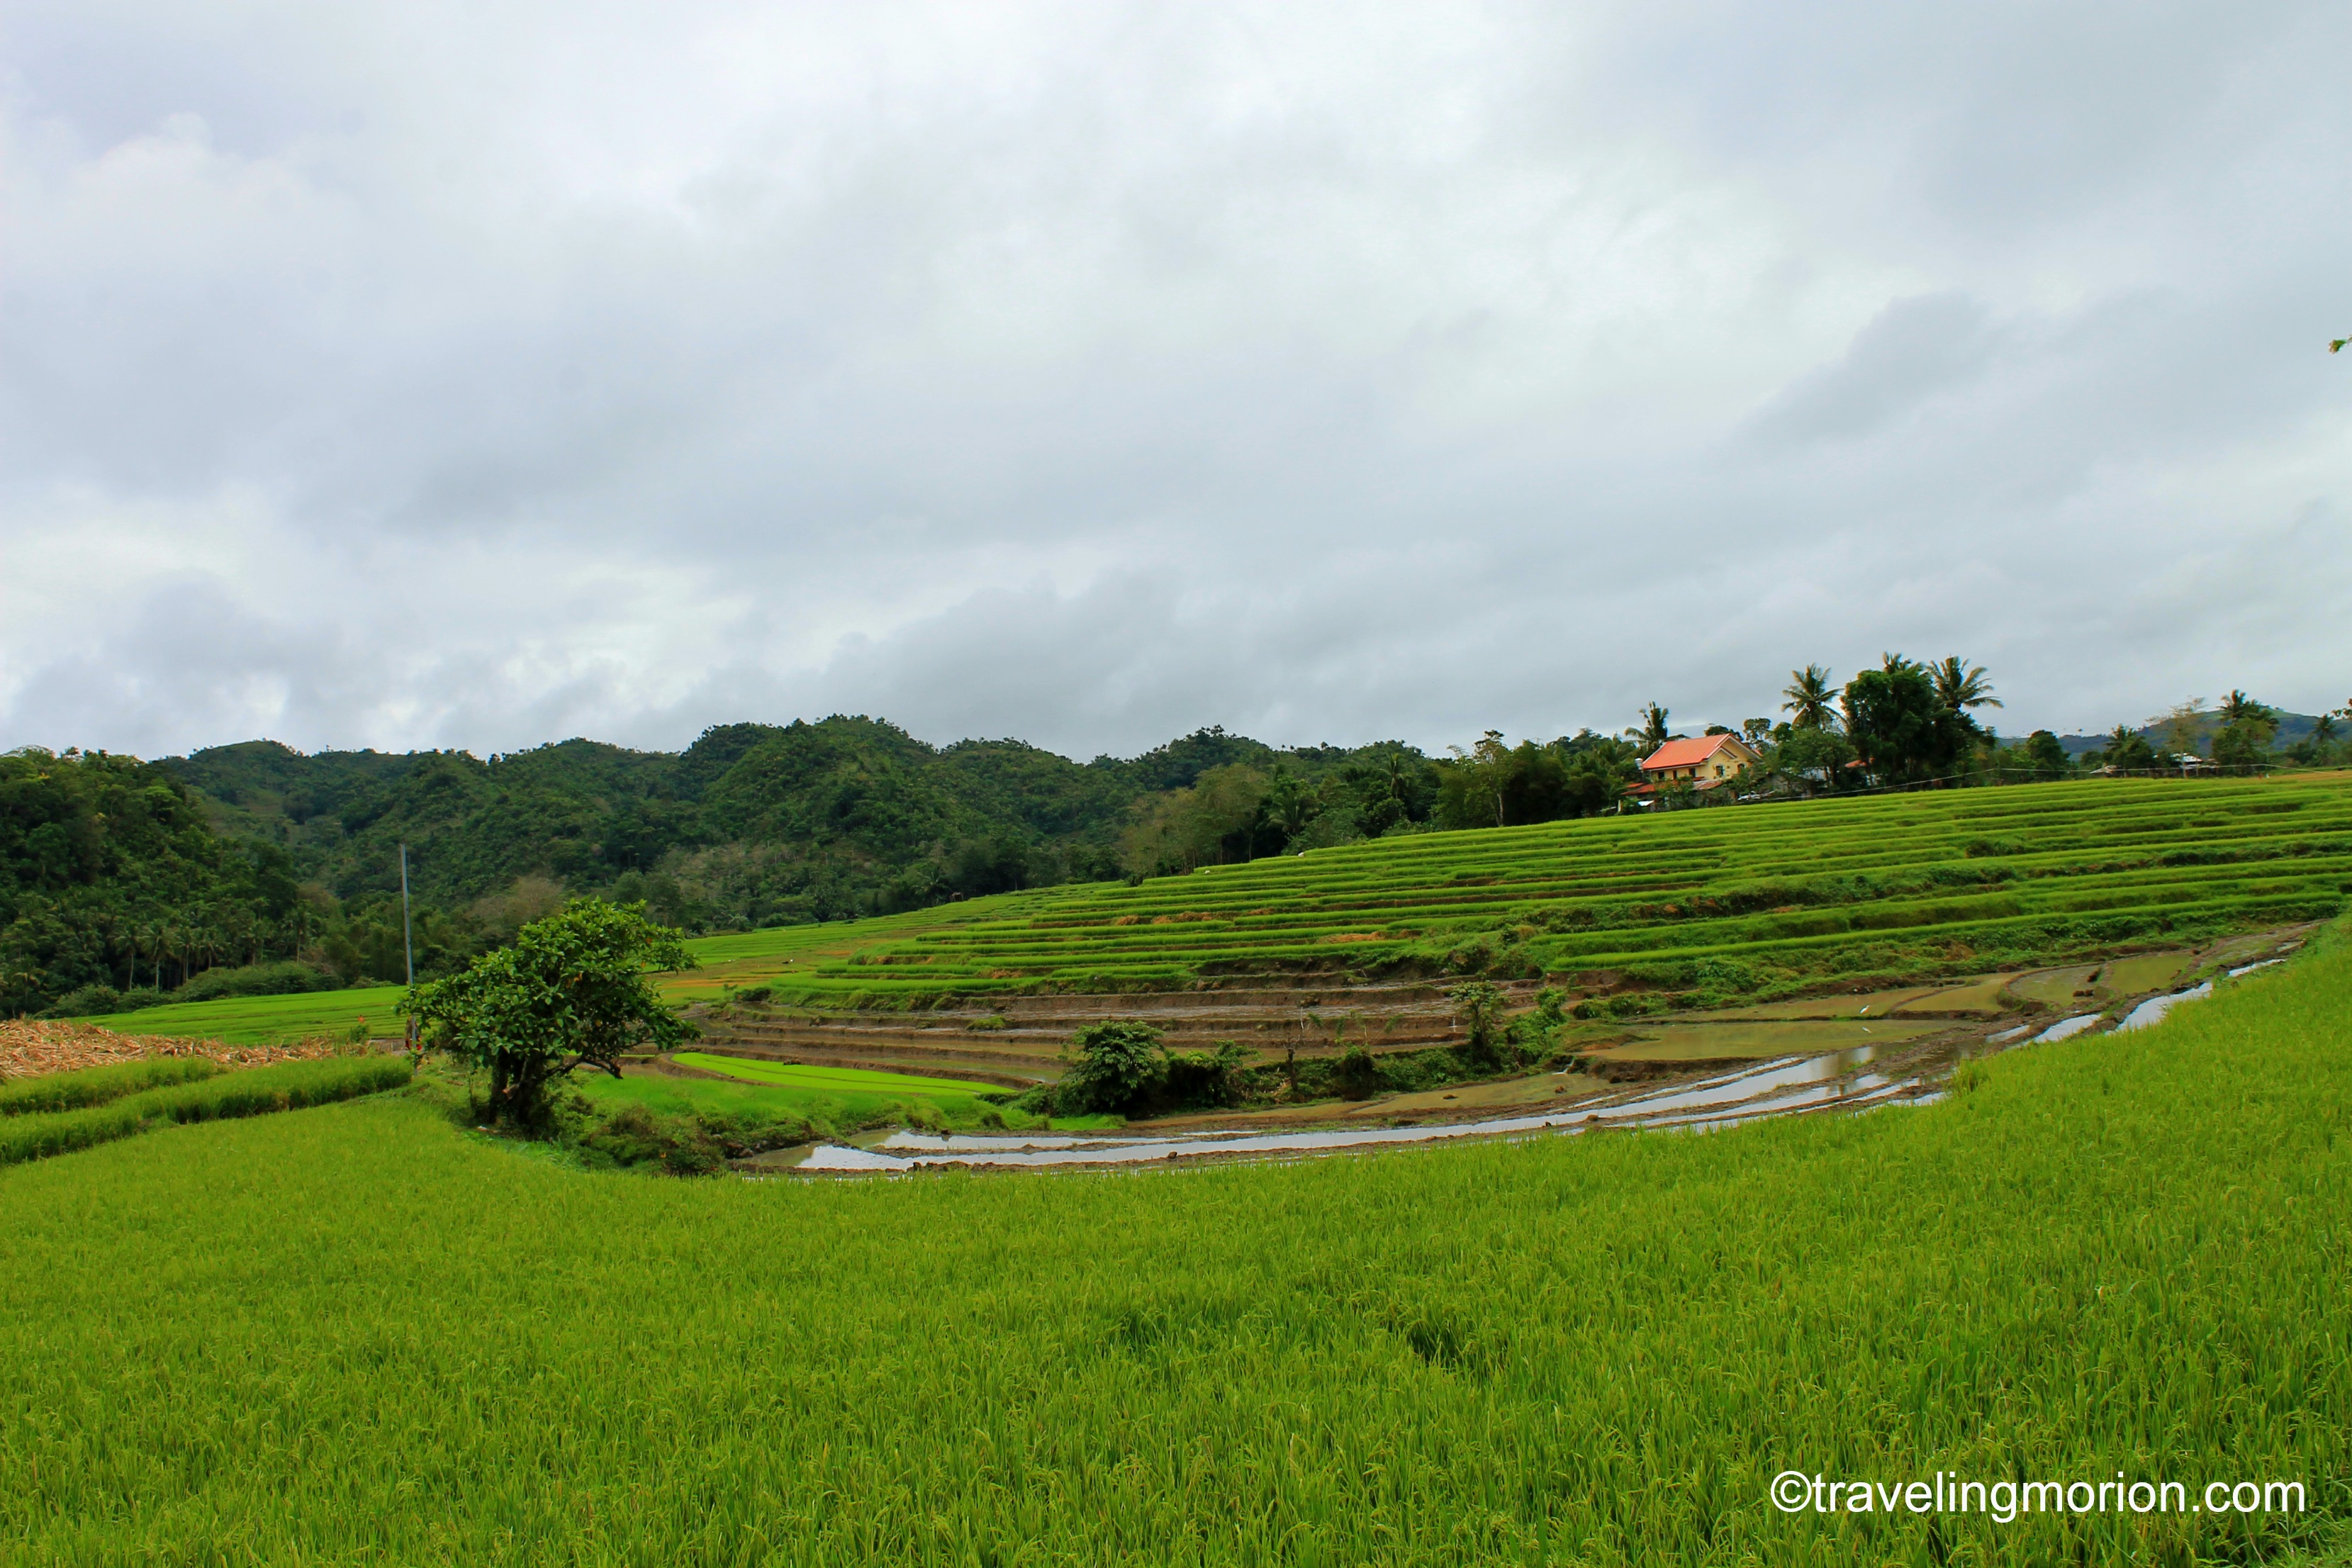 Codcod Rice Terraces of San Carlos City, Negros Occidental